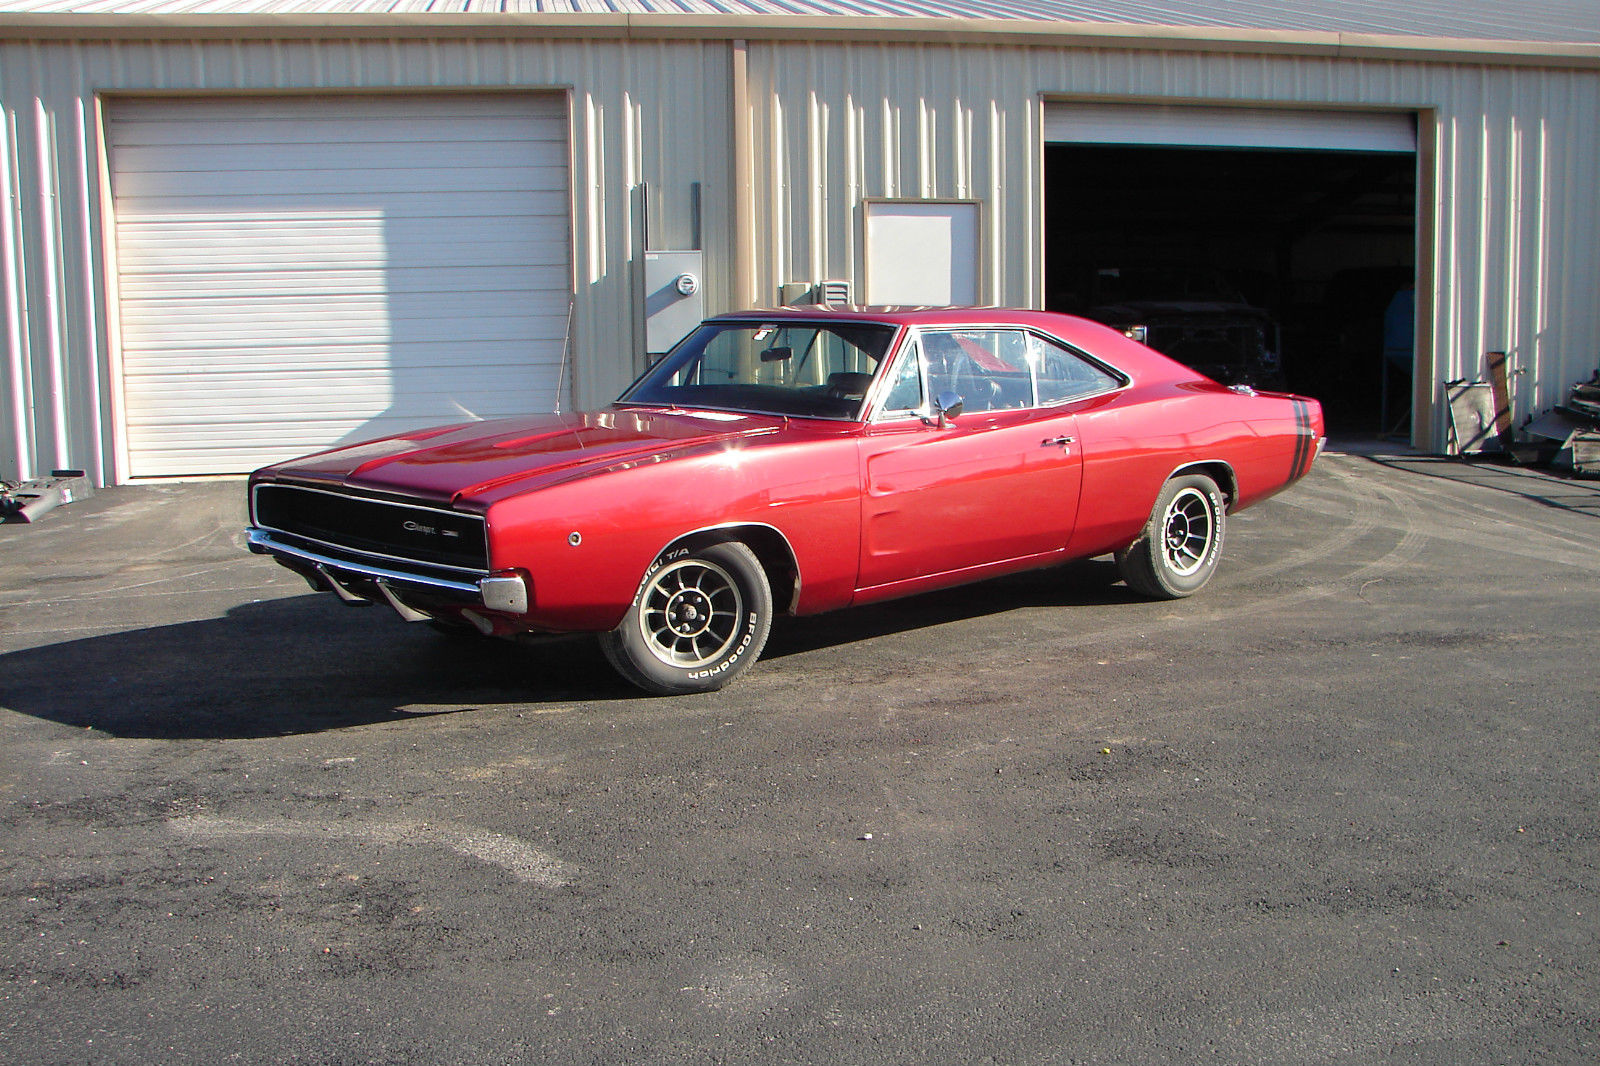 1969 Dodge Charger Daytona Drawing 415852270 in addition 1964 DODGE POLARA HARDTOP 15803 moreover 1970 Dodge Coro  Super Bee Muscle together with 29720 1973 chevrolet corvette factory big block moreover Sale. on dodge 440 big block engine